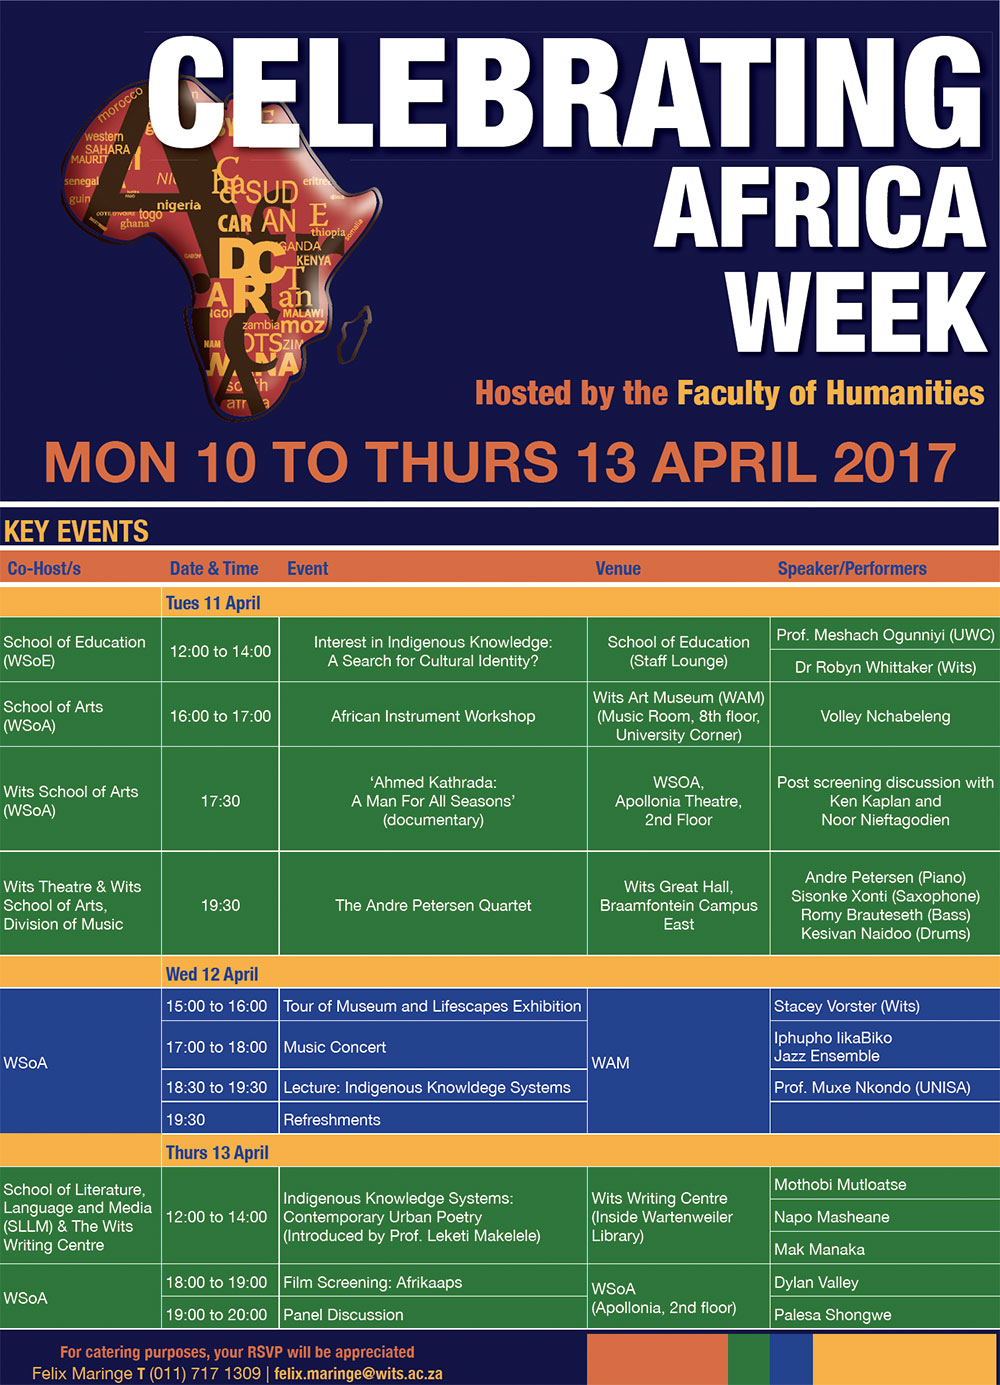 Africa Week hosted by the Faculty of Humanities